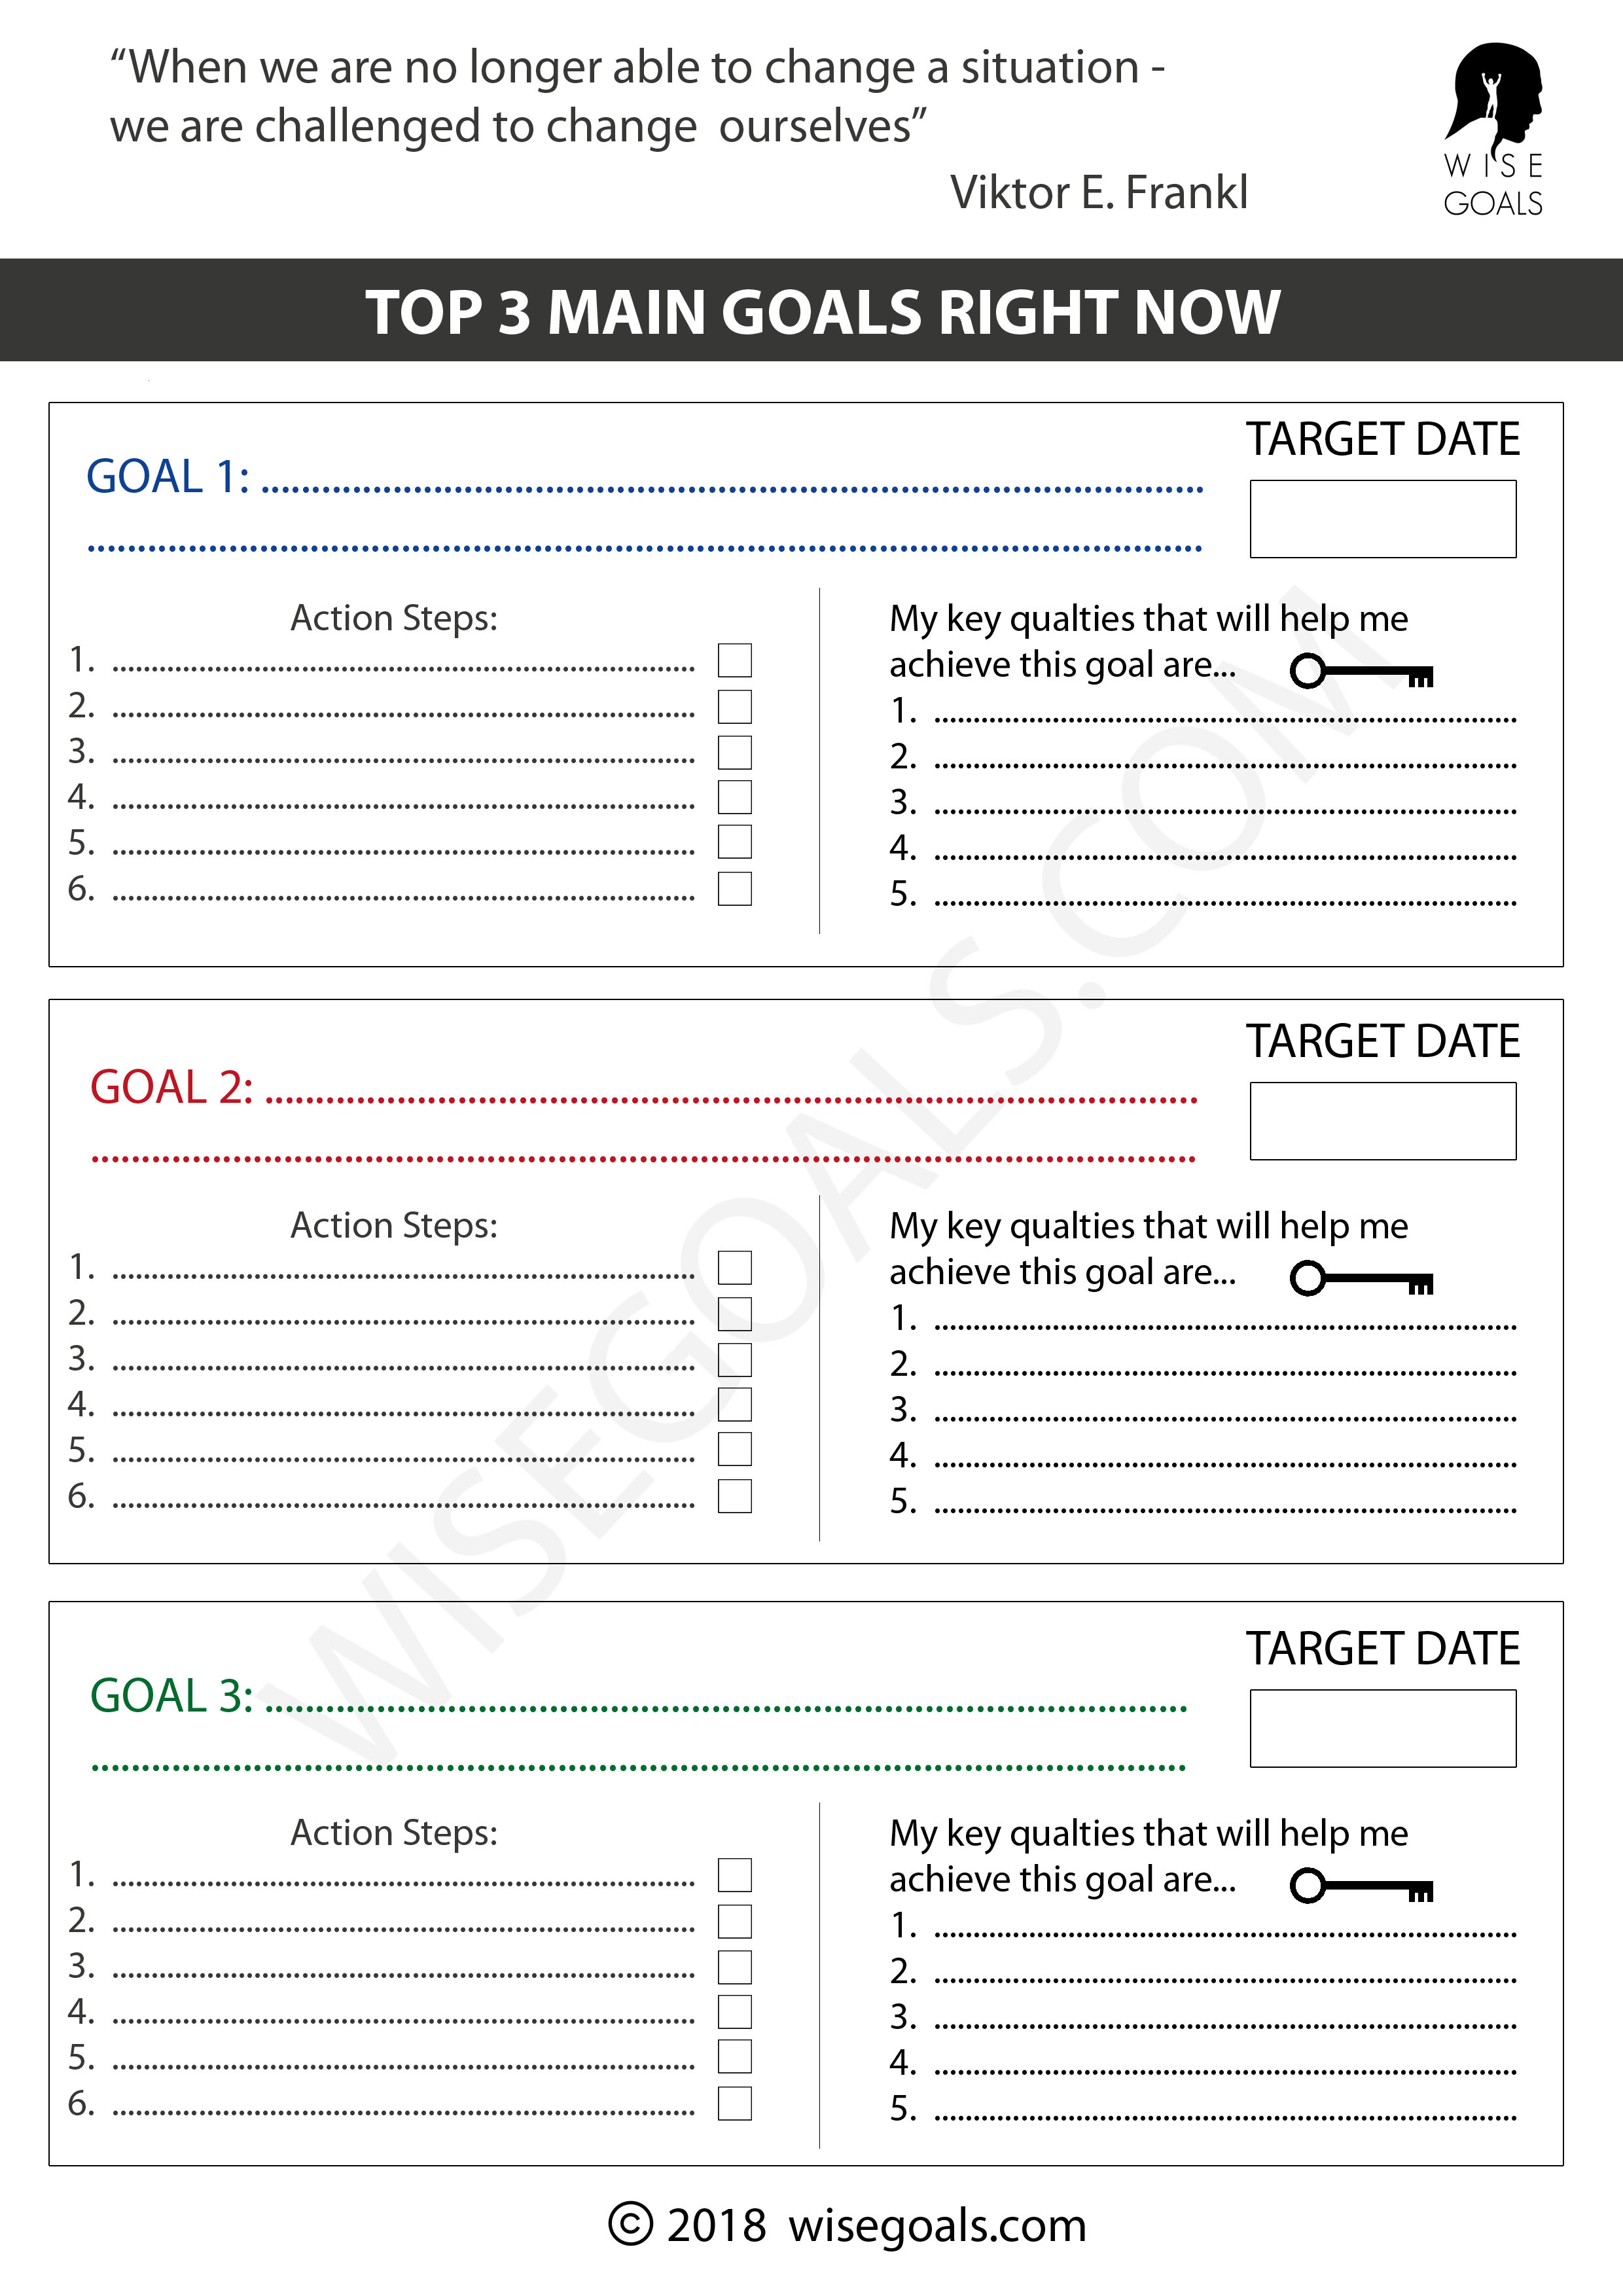 6 Different Goal Setting Templates 1 Your Top 3 Goals 2 Thinking Through Biggest Dream Flower Design Card 4 Credit Sized Daily